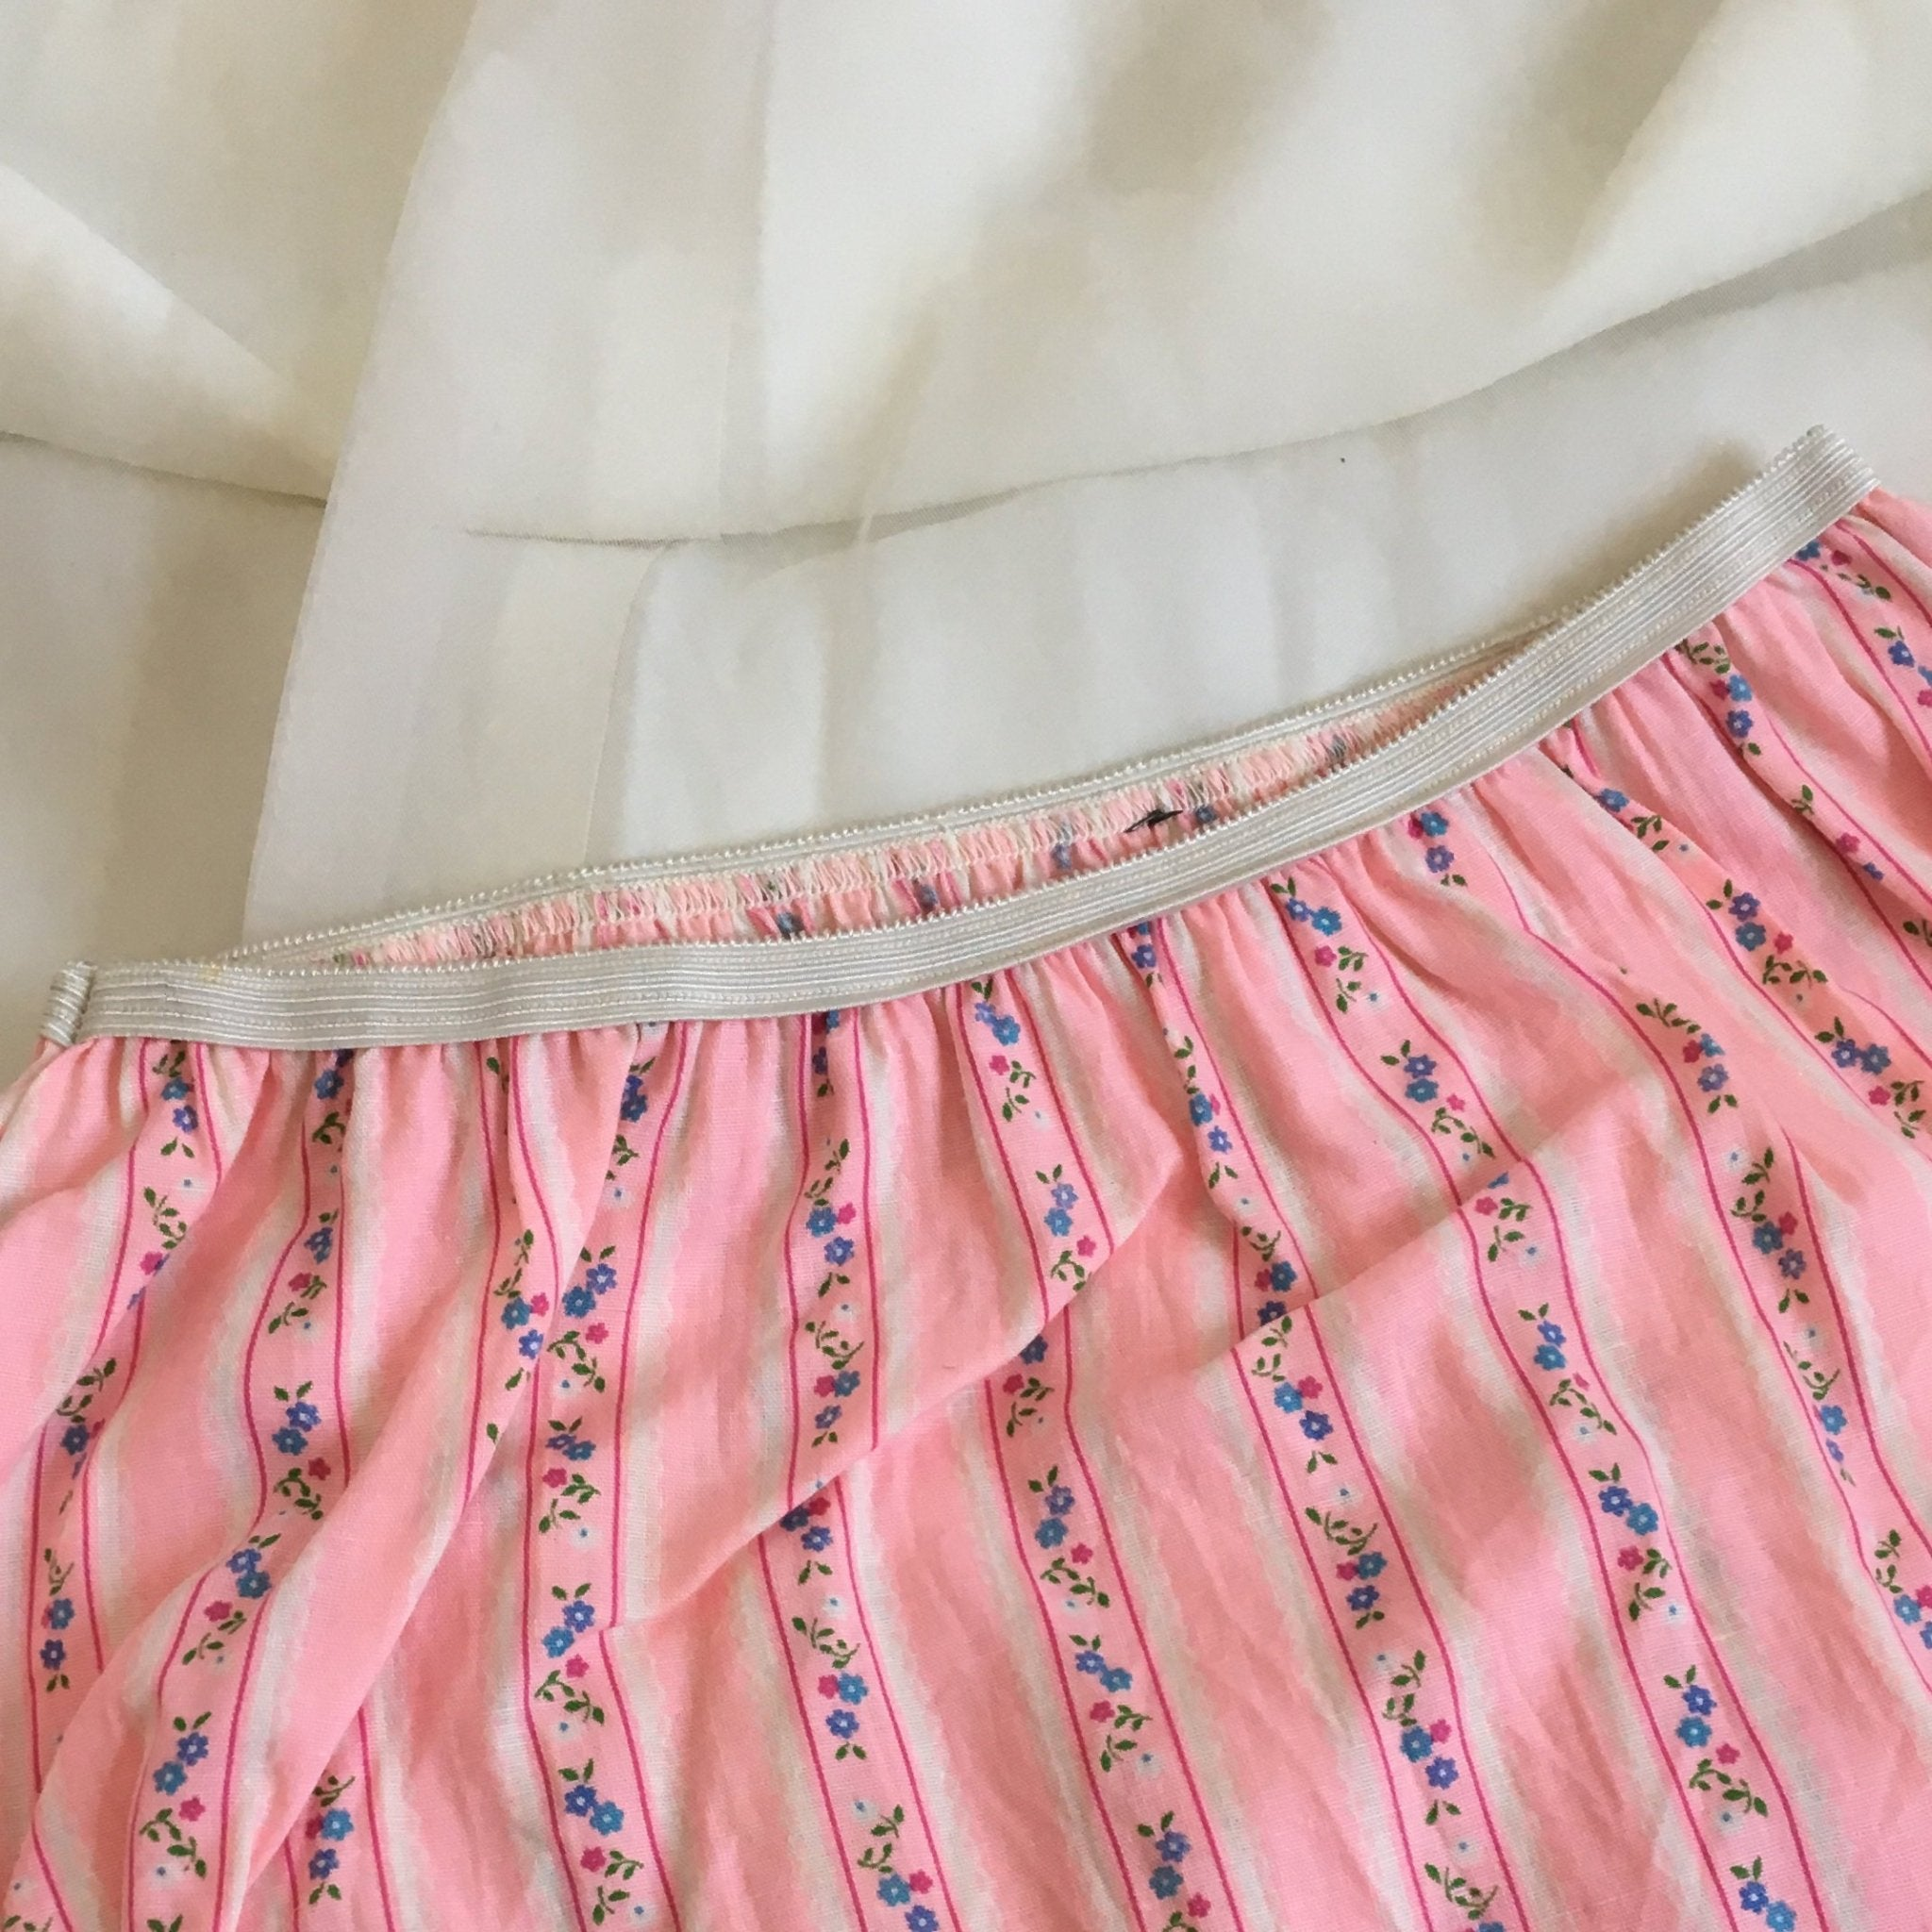 Vintage 1960's Panties | Light Pink & Floral Pattern Cotton with Ruffle Leg | New Old Stock | High Waist Bloomers | Mushroom Gusset | Size S - Daggers & Dames